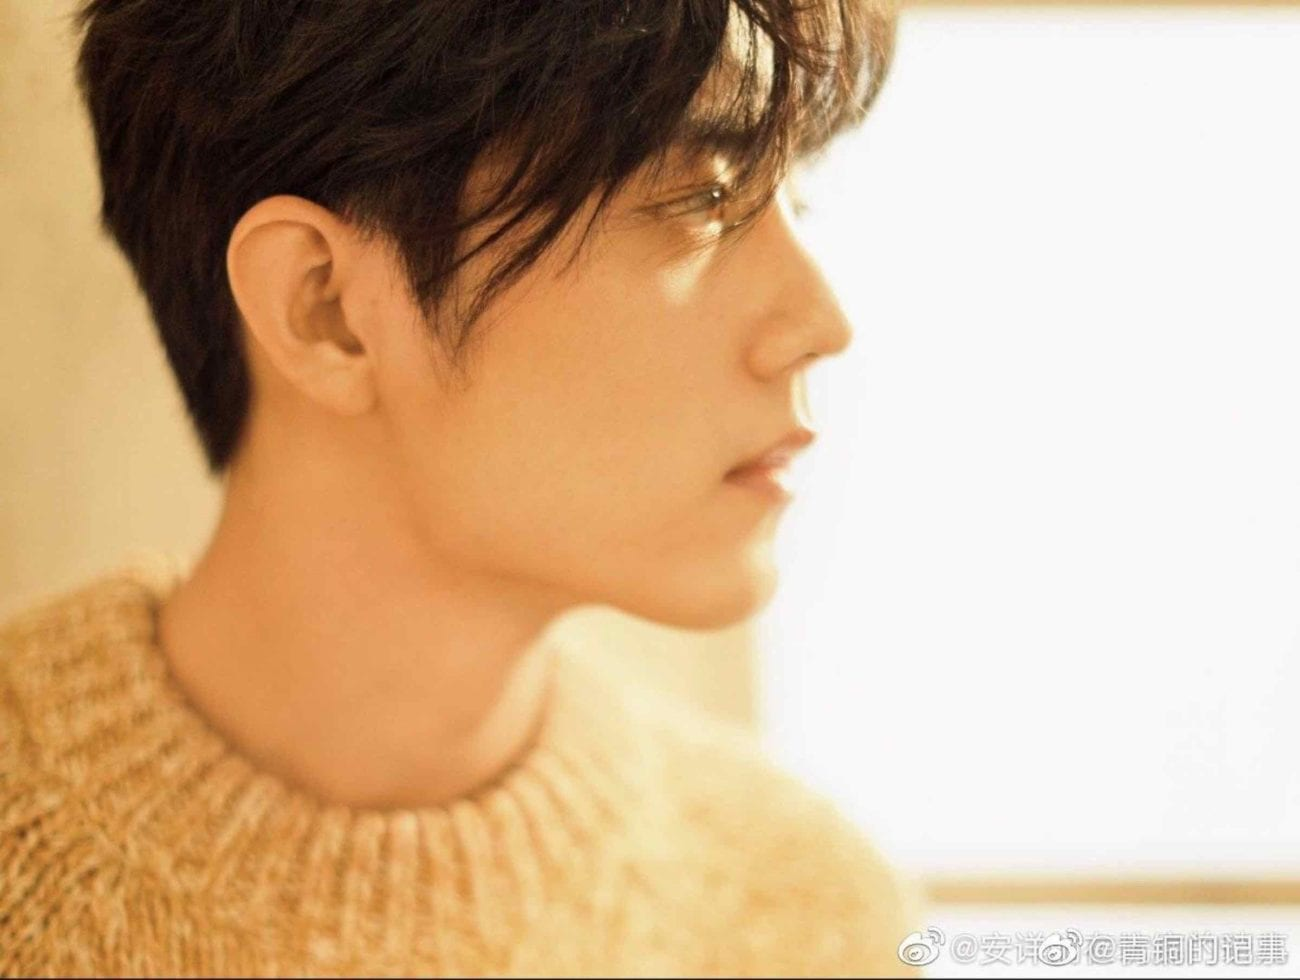 We've fallen deeply in love with Xiao Zhan, also known as Sean Xiao. A Chinese actor and singer. Here's some films you can catch Xiao Zhan in.